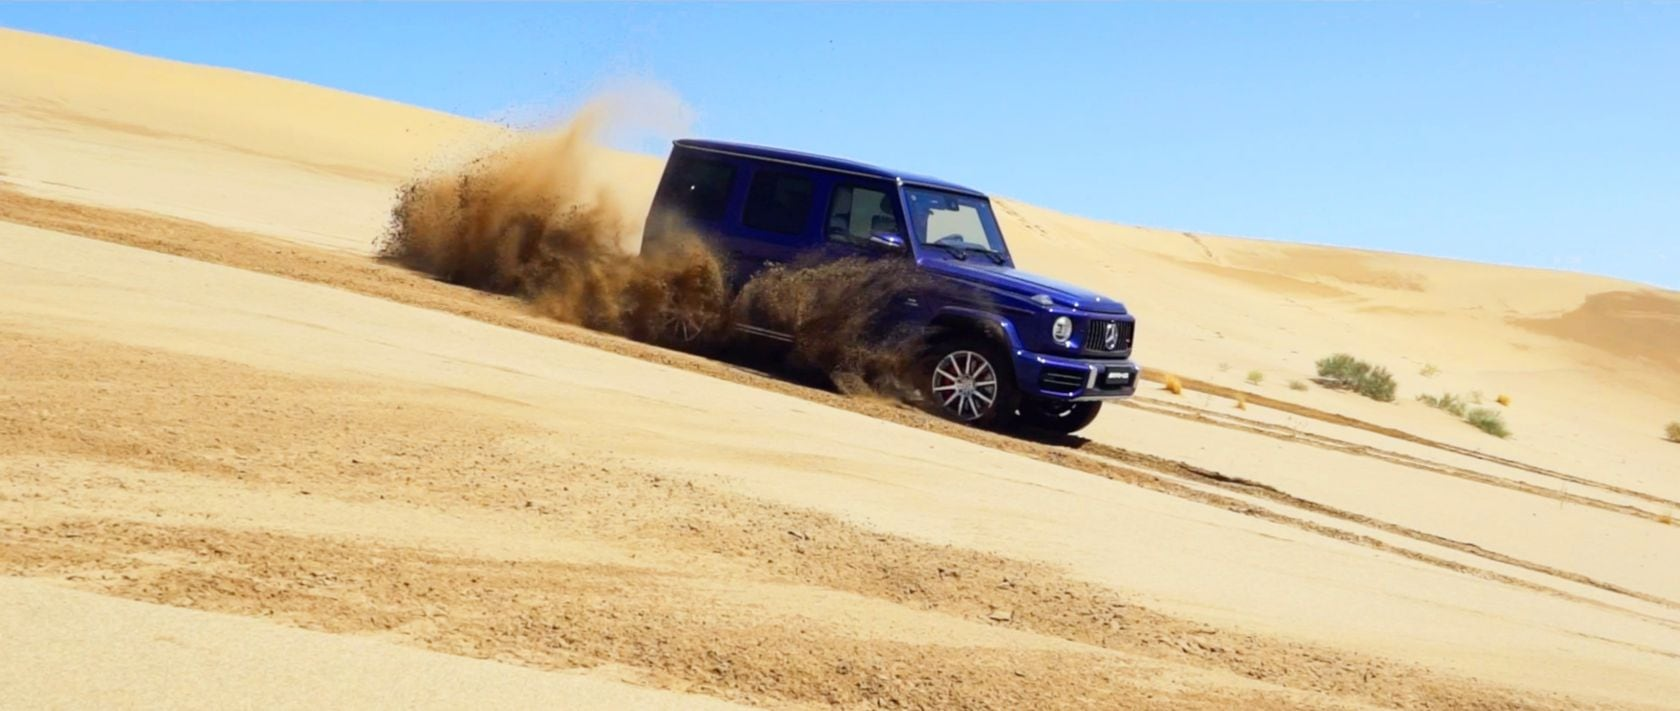 The 2019 Mercedes-AMG G 63 (W 463) in brilliant blue in the Chinese Desert.